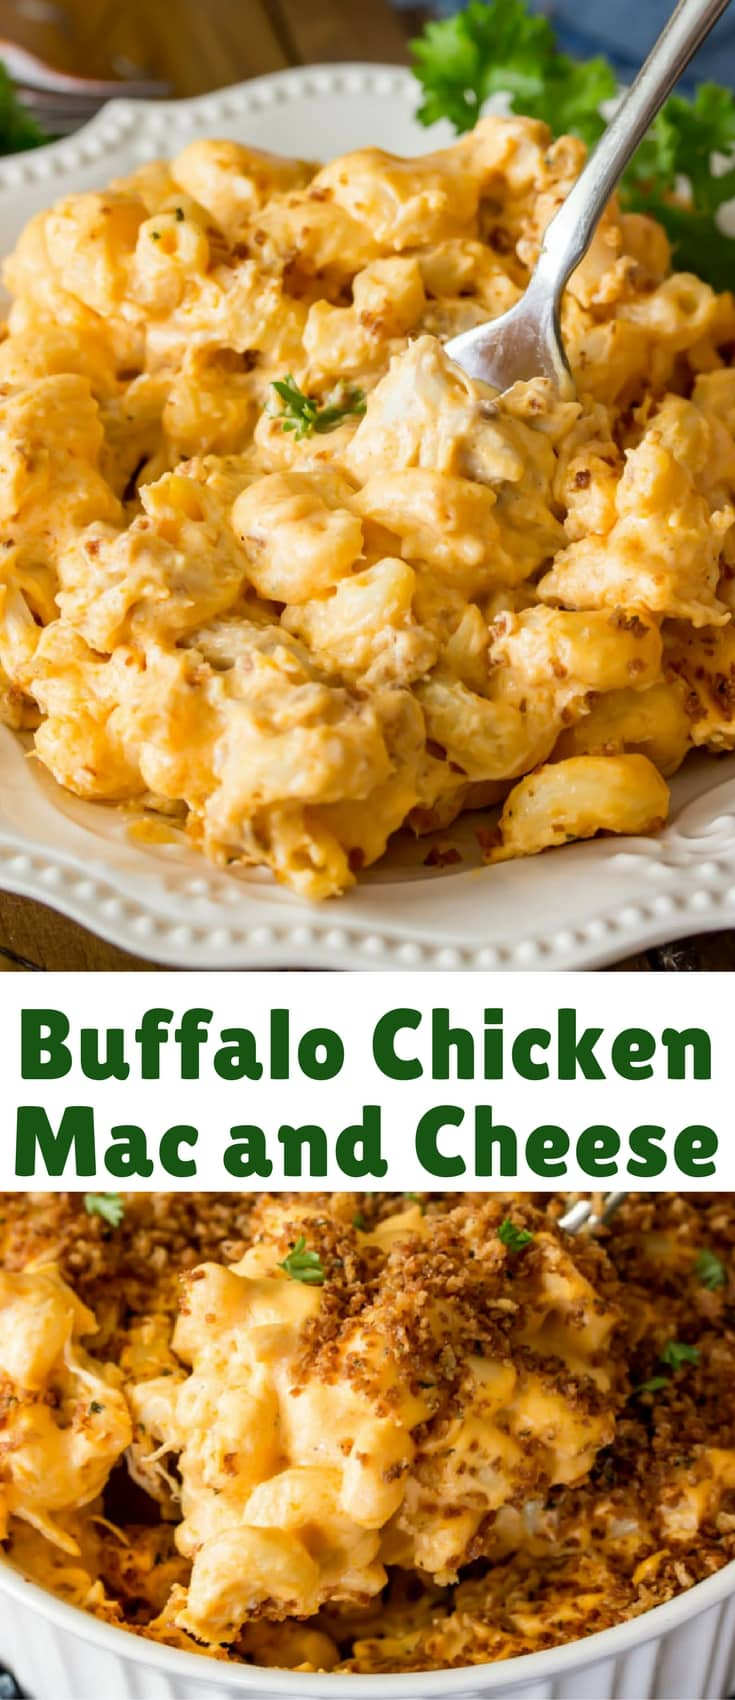 A creamy, spicy buffalo chicken mac and cheese topped off with a buttery toasted panko. Be sure to check out the video just above the recipe for a super quick and easy visual how-to guide!